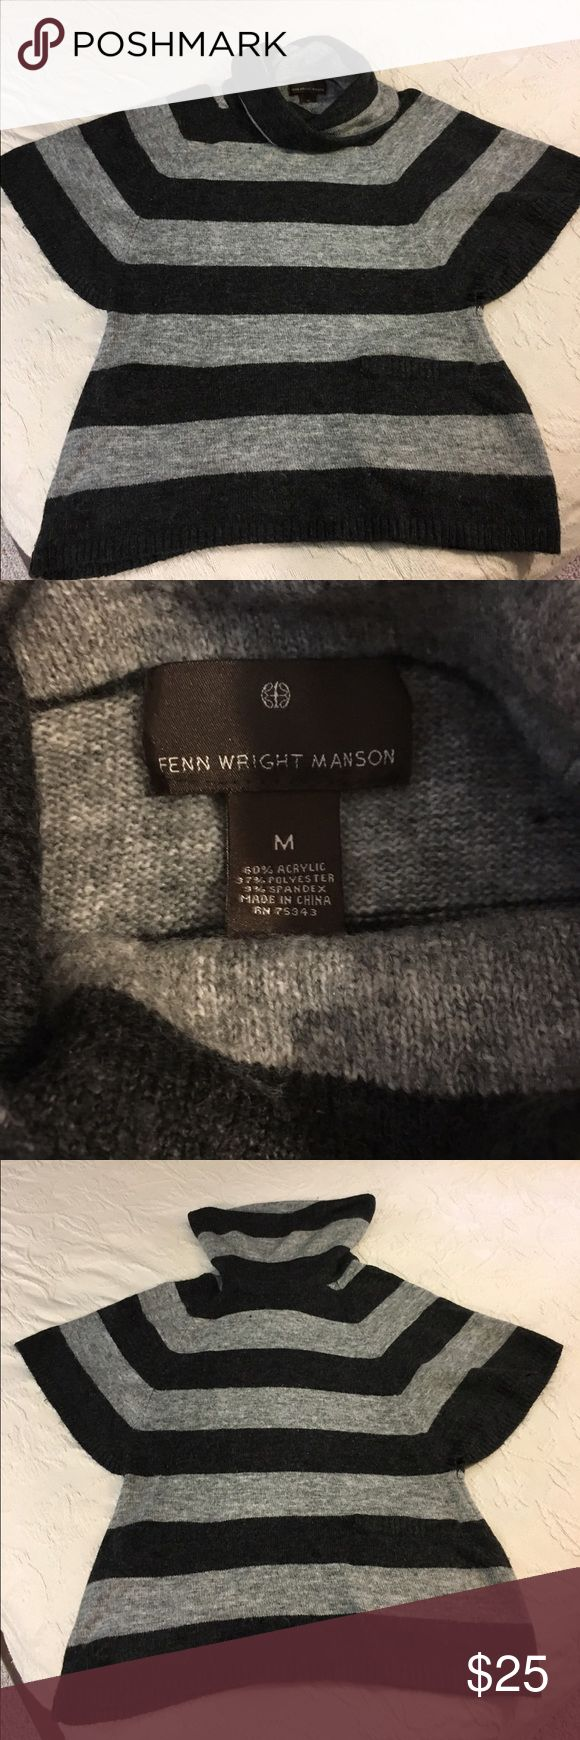 Fenn Wright Manson Cowl Neck Sweater Black and gray cowl neck sweater with two front pockets. Fenn Wright Manson Sweaters Cowl & Turtlenecks